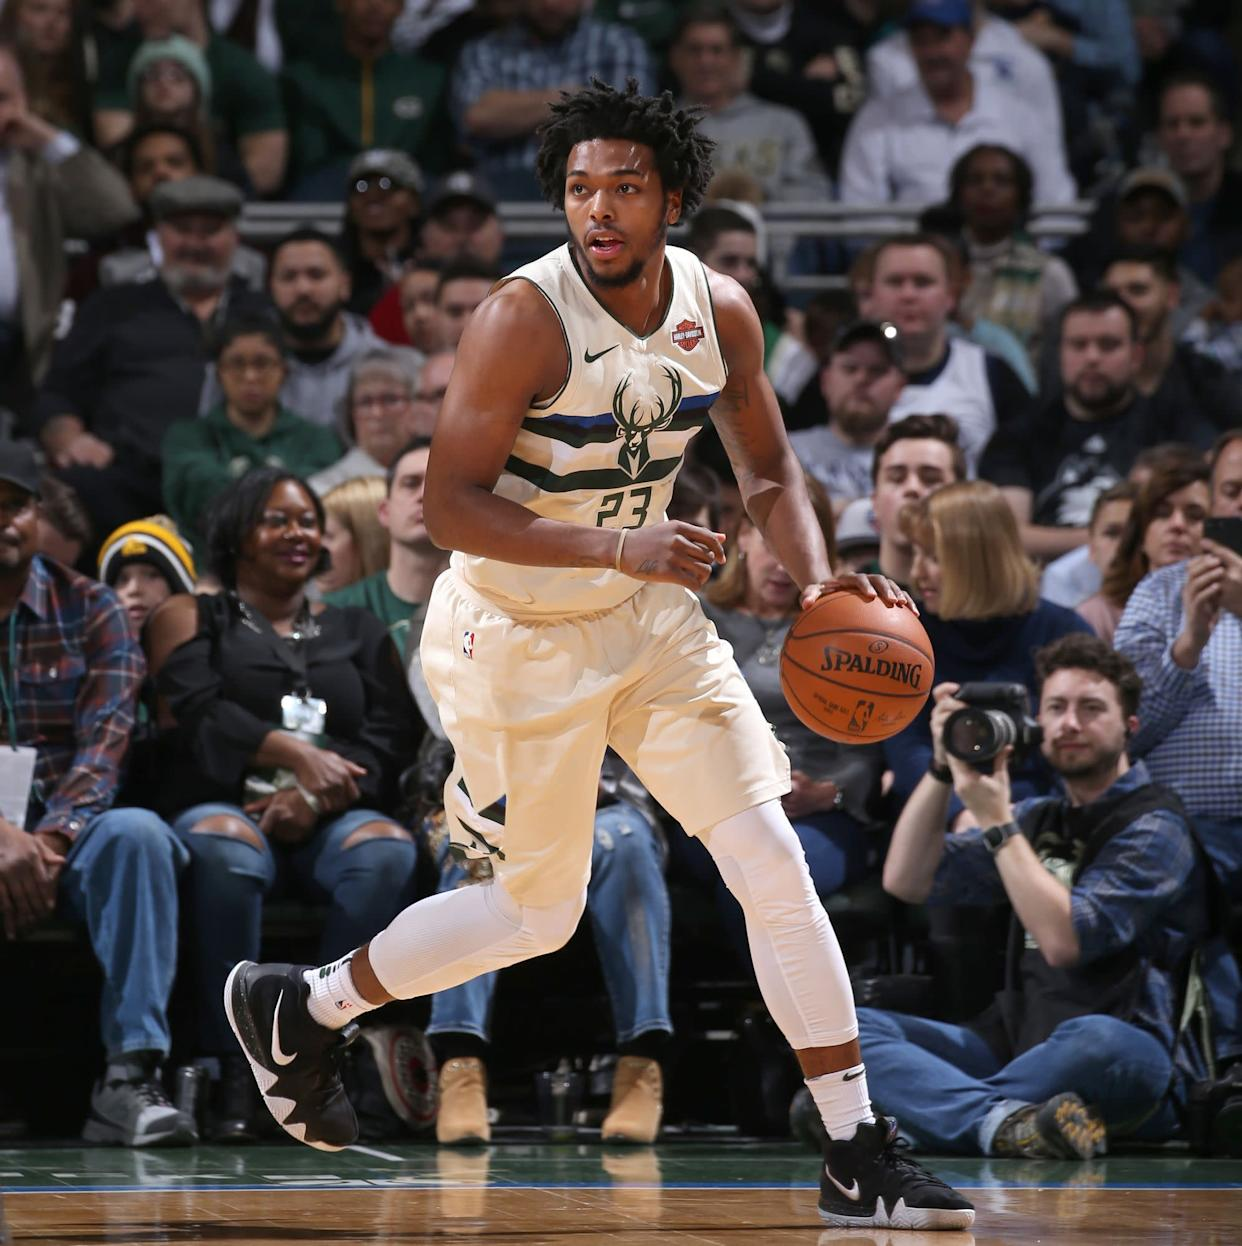 Brown, a guard for the Milwaukee Bucks, is seen playing against the New Orleans Pelicans in February. On Tuesday he filed a lawsuit against Milwaukee's police department and city. (Photo: Gary Dineen via Getty Images)